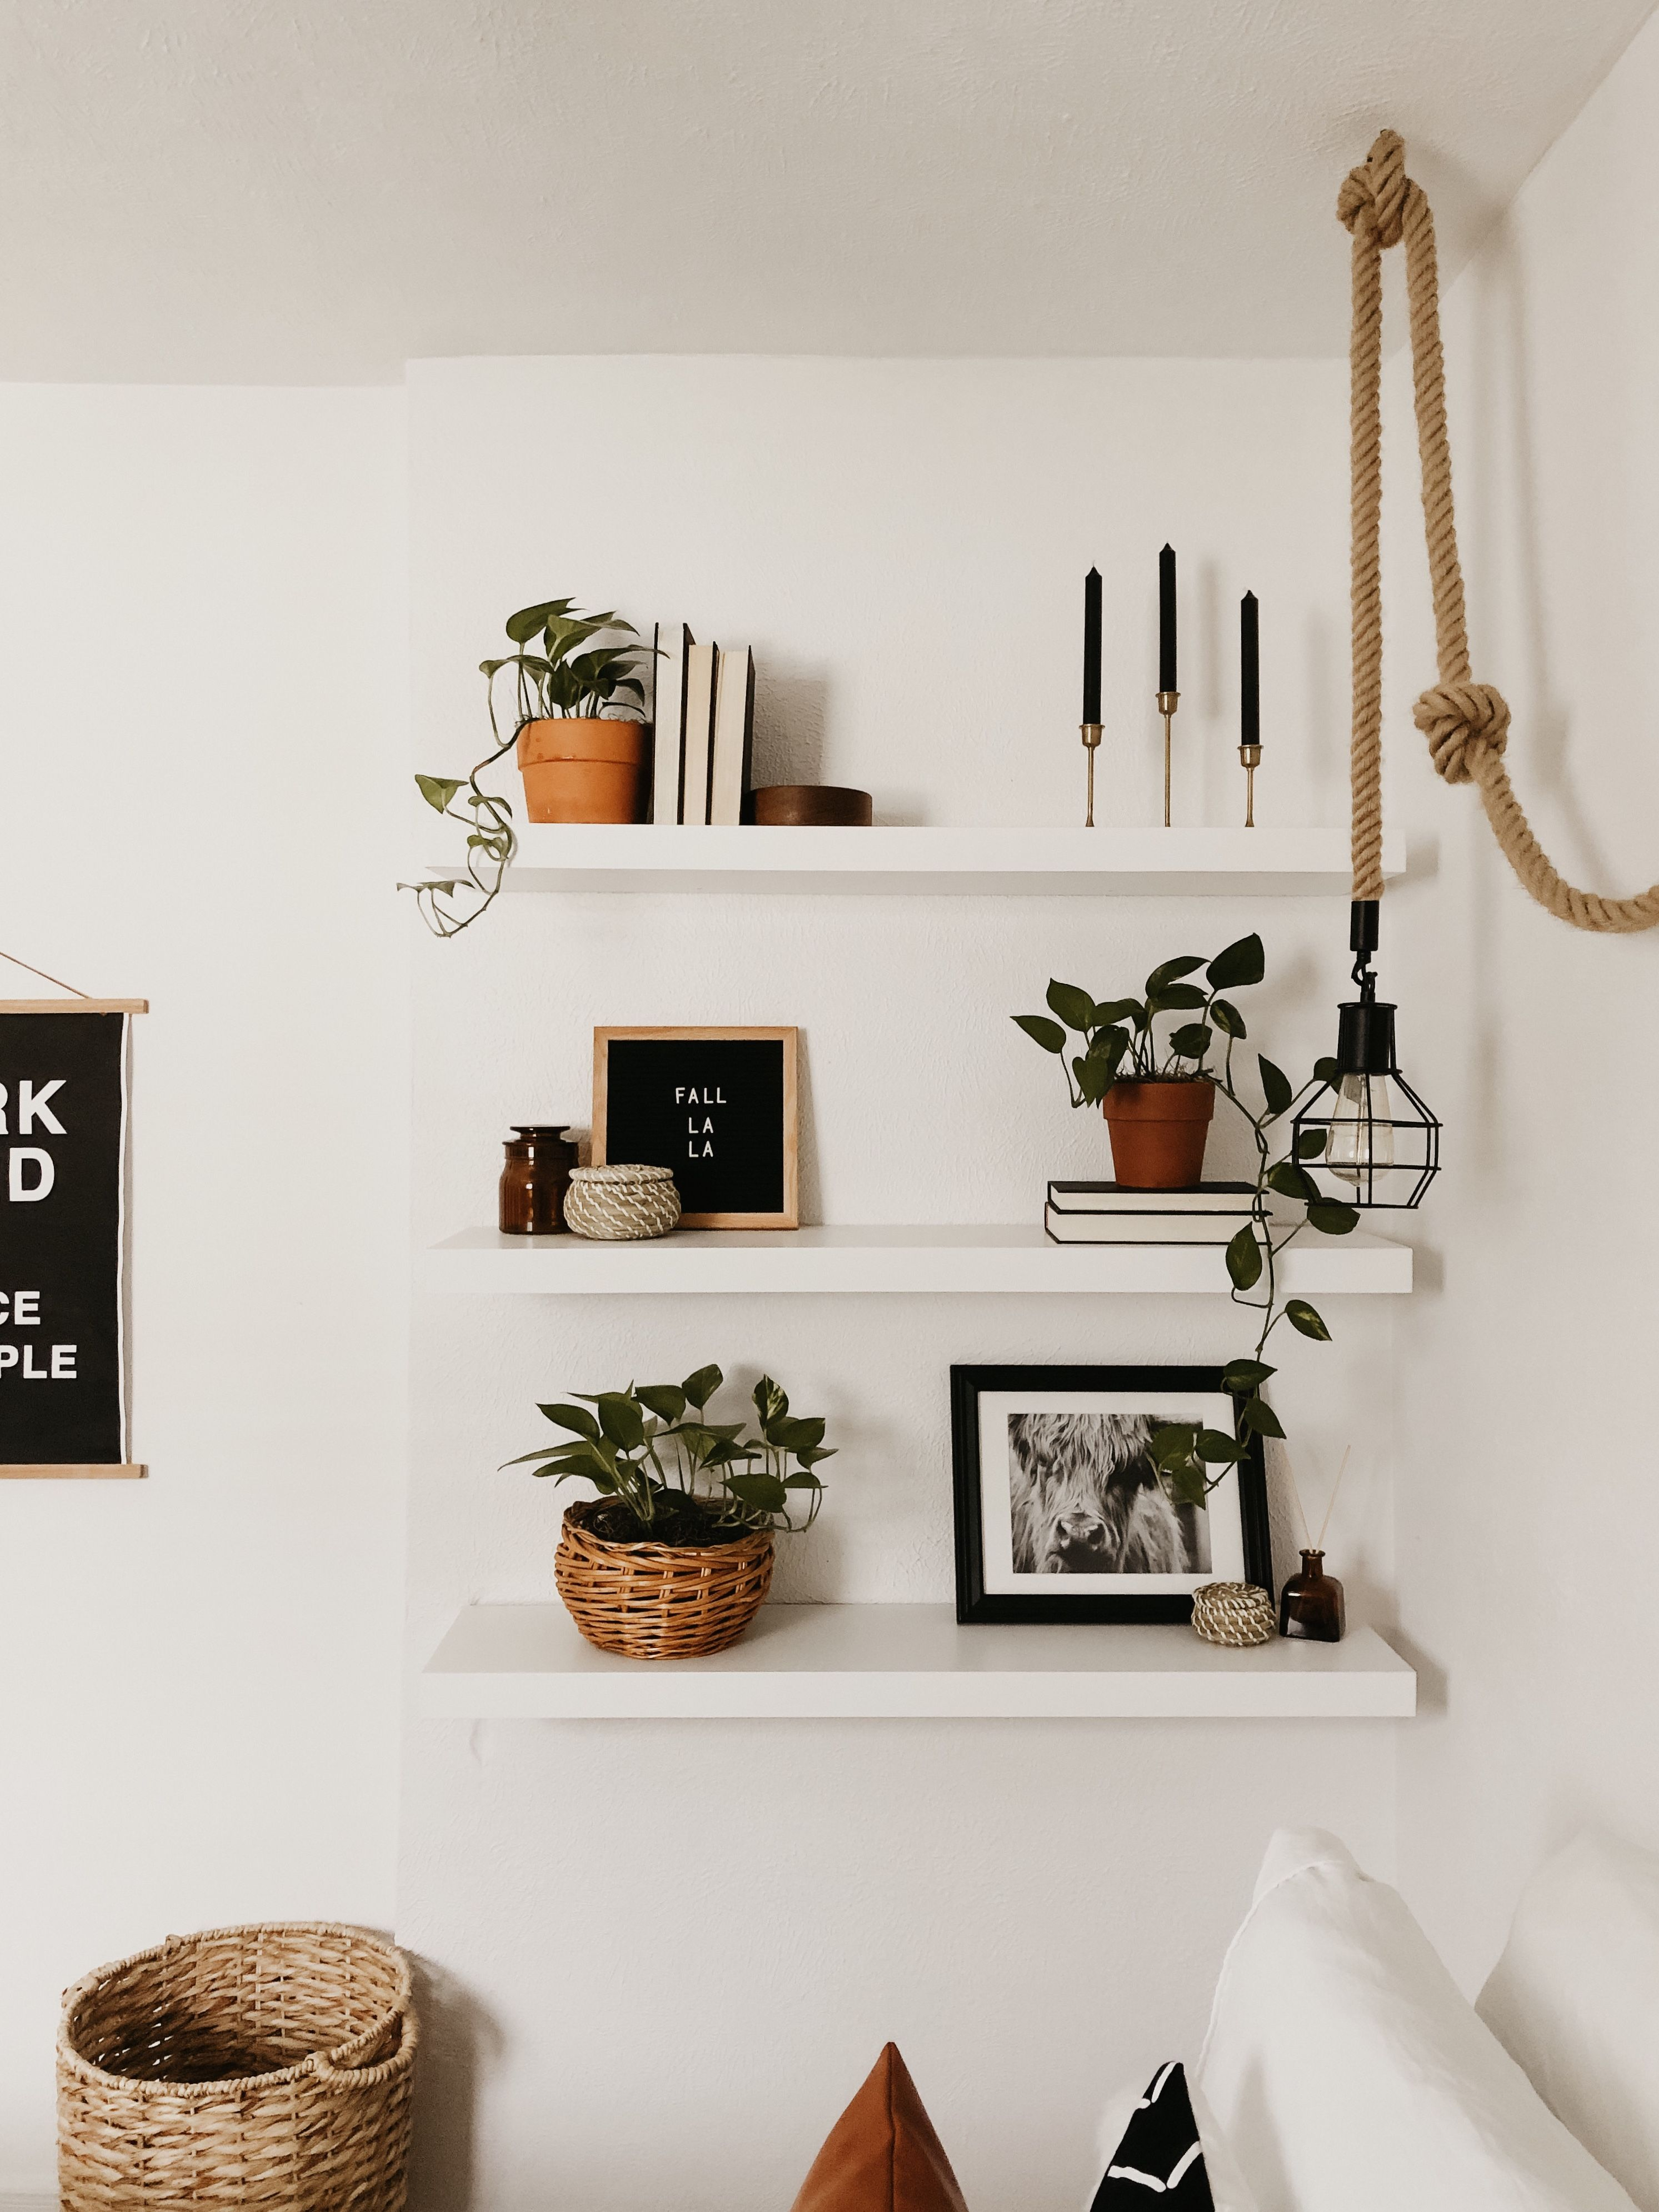 Simple Decorations To Put On Floating Shelves  Shelf decor